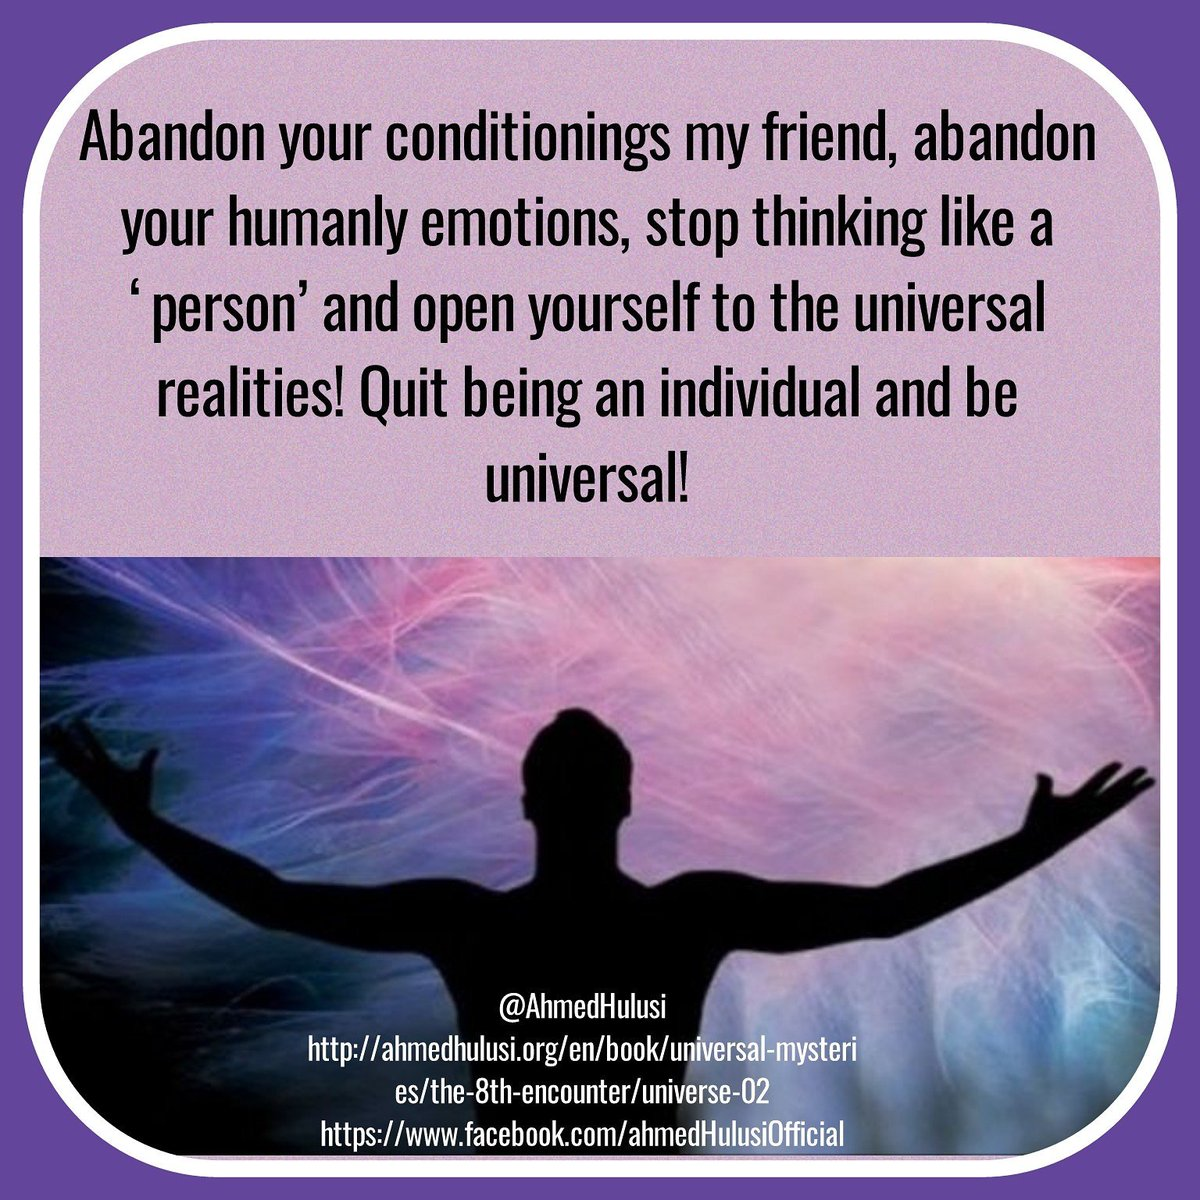 #Facebook @AhmedHulusi #Abandon ur #conditionings my #friend..  http:// ahmedhulusi.org/en/book/univer sal-mysteries/the-8th-encounter/universe-02 &nbsp; …   https://www. facebook.com/ahmedHulusiOff icial &nbsp; … <br>http://pic.twitter.com/J0A0g6bCLn